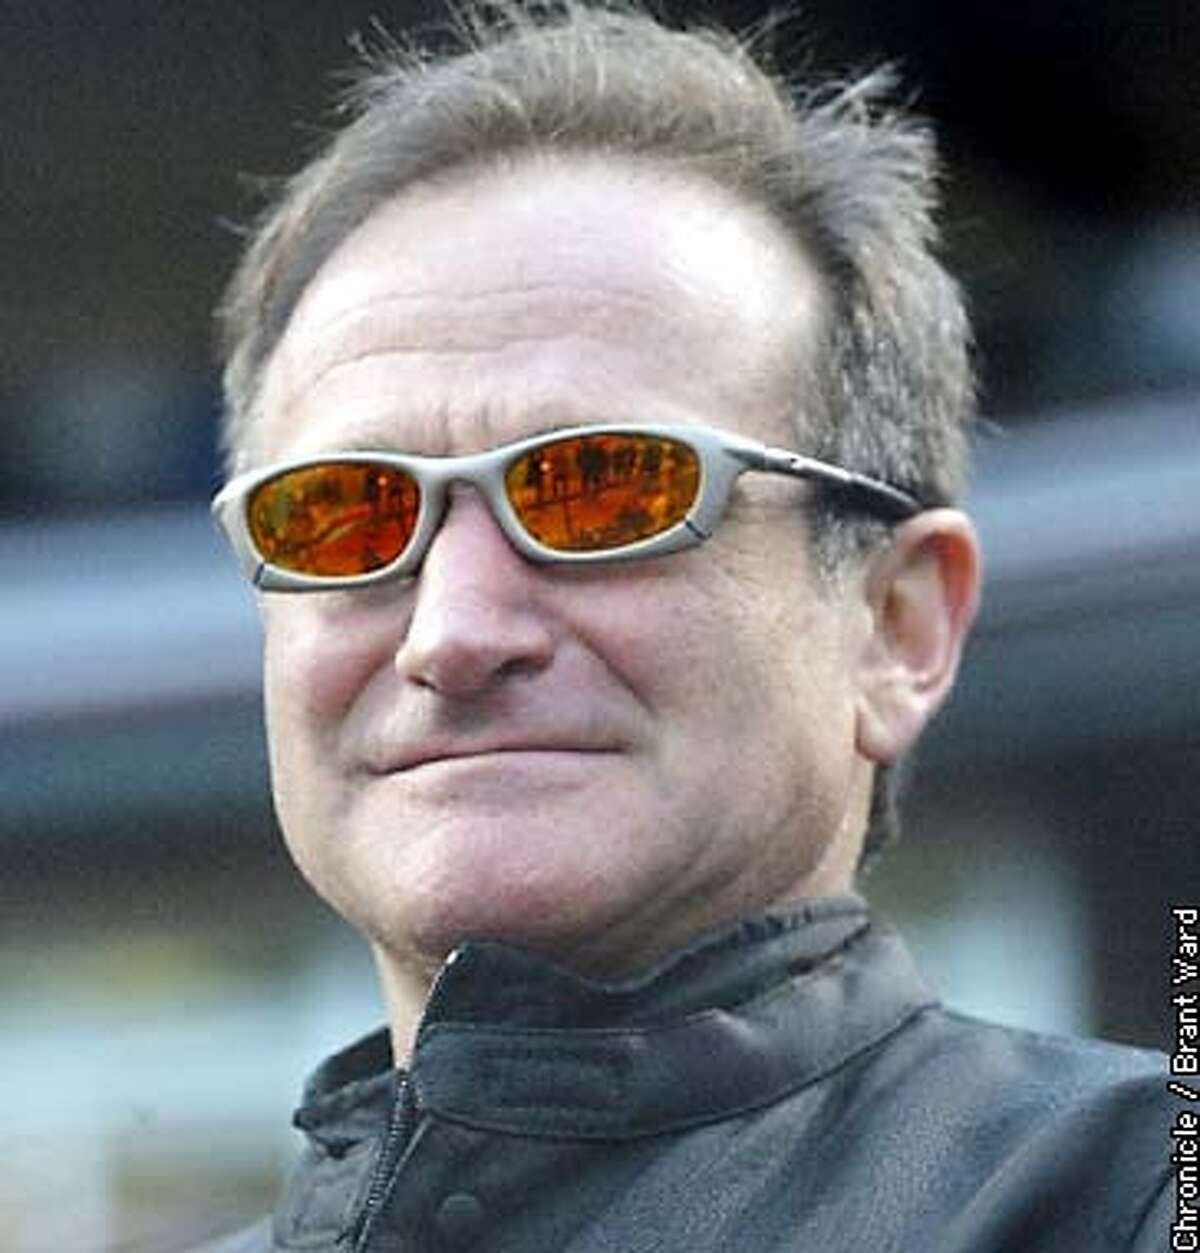 .jpg---Superstar Robin Williams attends Game 3. The San Francisco Giants play the Anaheim Angels in Game 3 of the World Series at Pac Bell Park in San Francisco, Ca., October 22, 2002. Brant Ward/San Francisco Chronicle